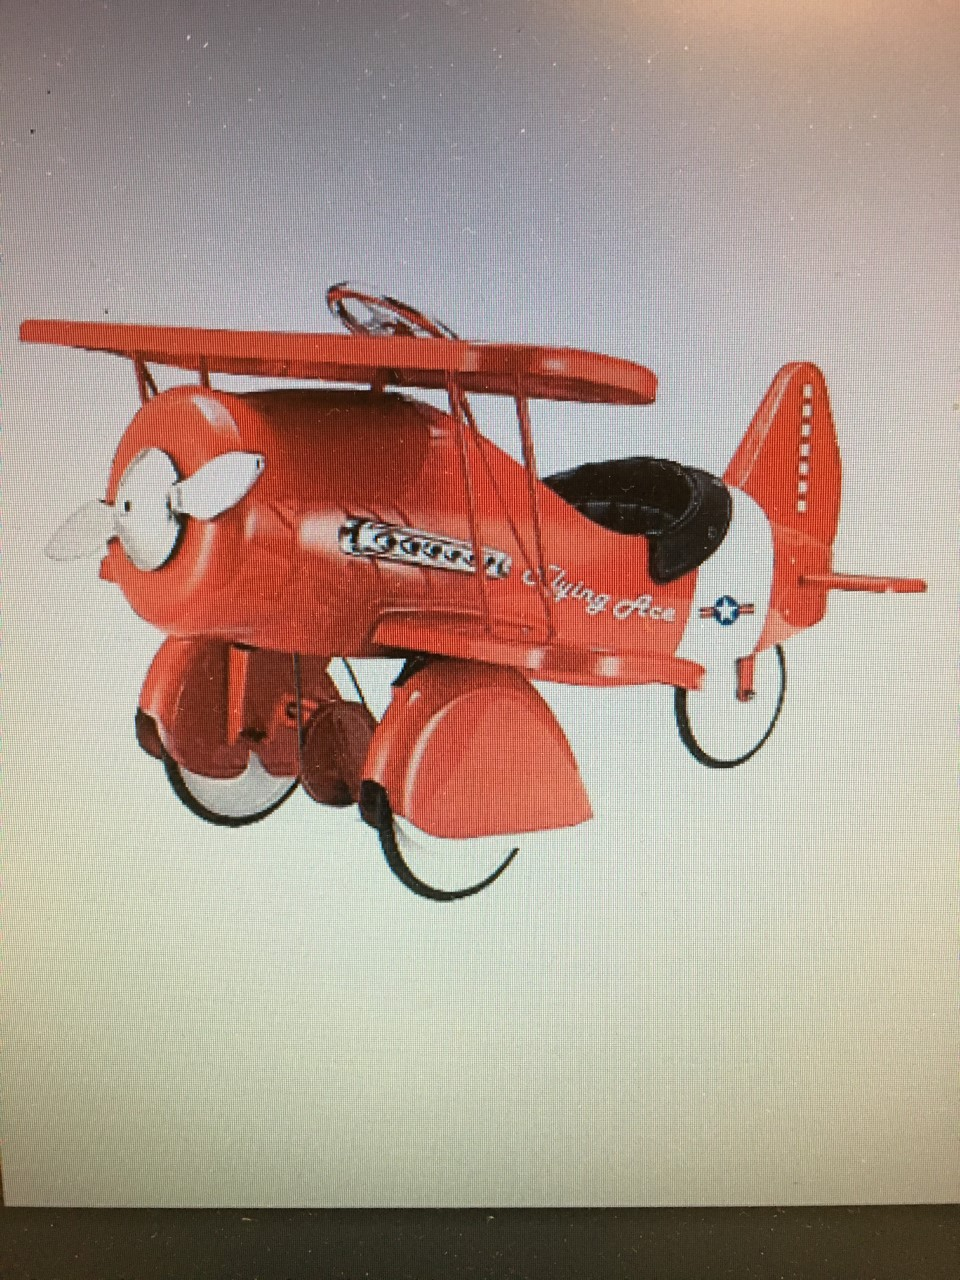 Pibbs - Airplane Kid's Hydraulic Chair